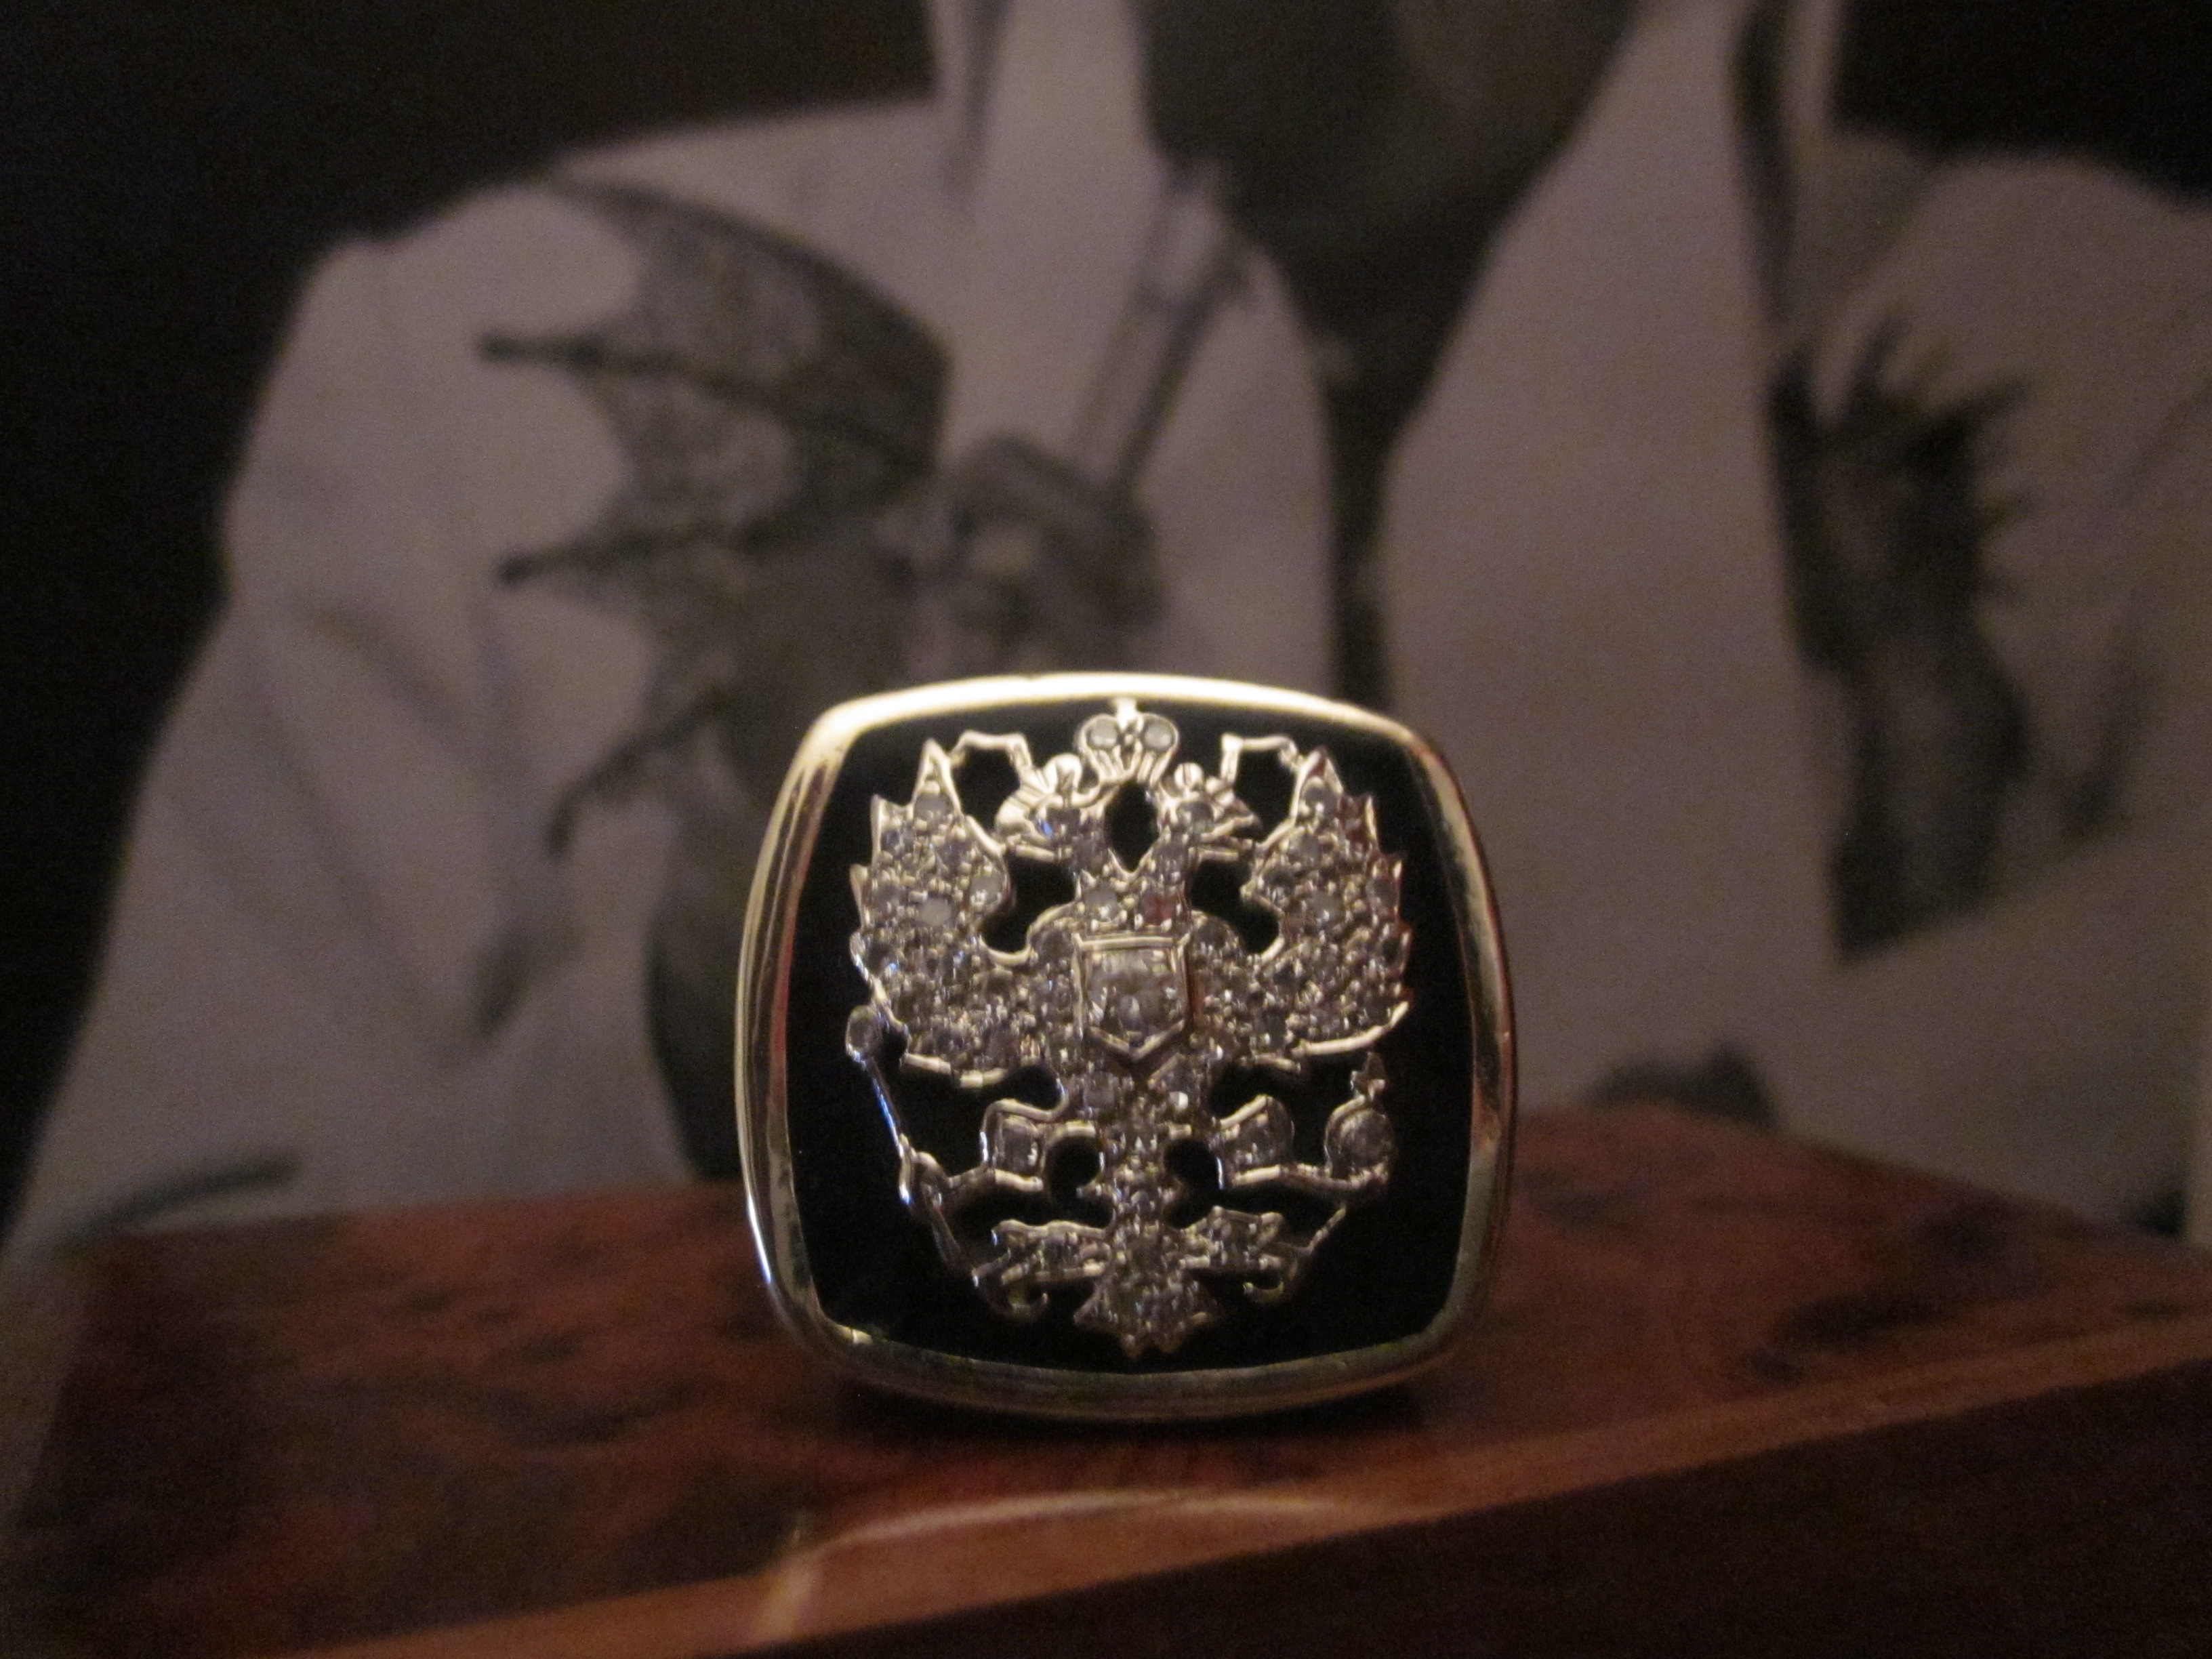 Elvis Presley S Famous Russian Tsar Ring Up For Auction